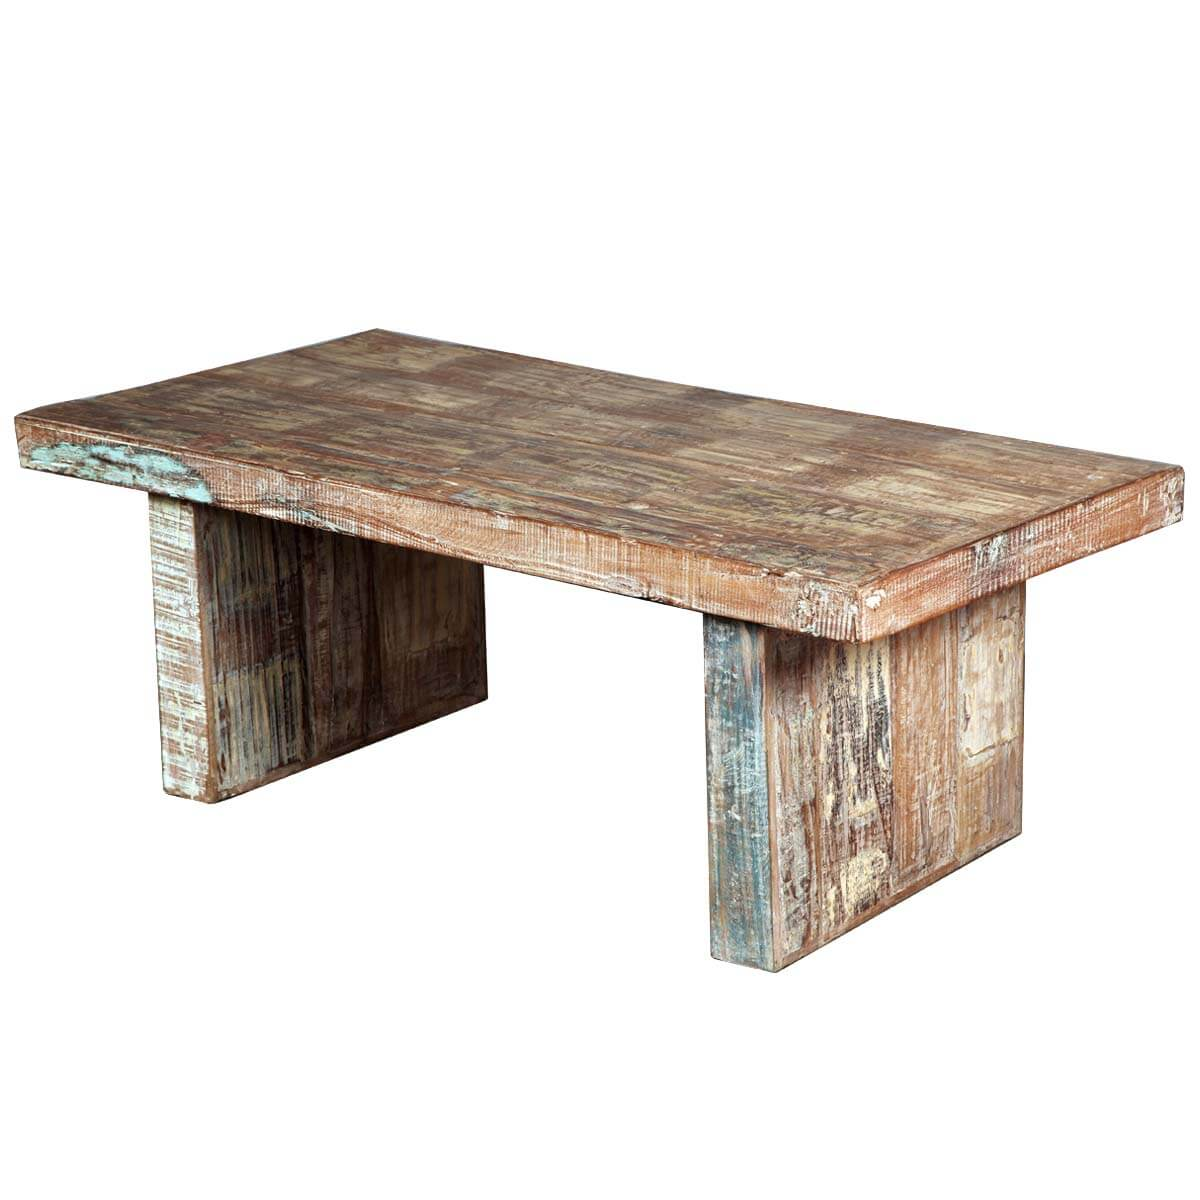 Rustic mission reclaimed wood distressed coffee table